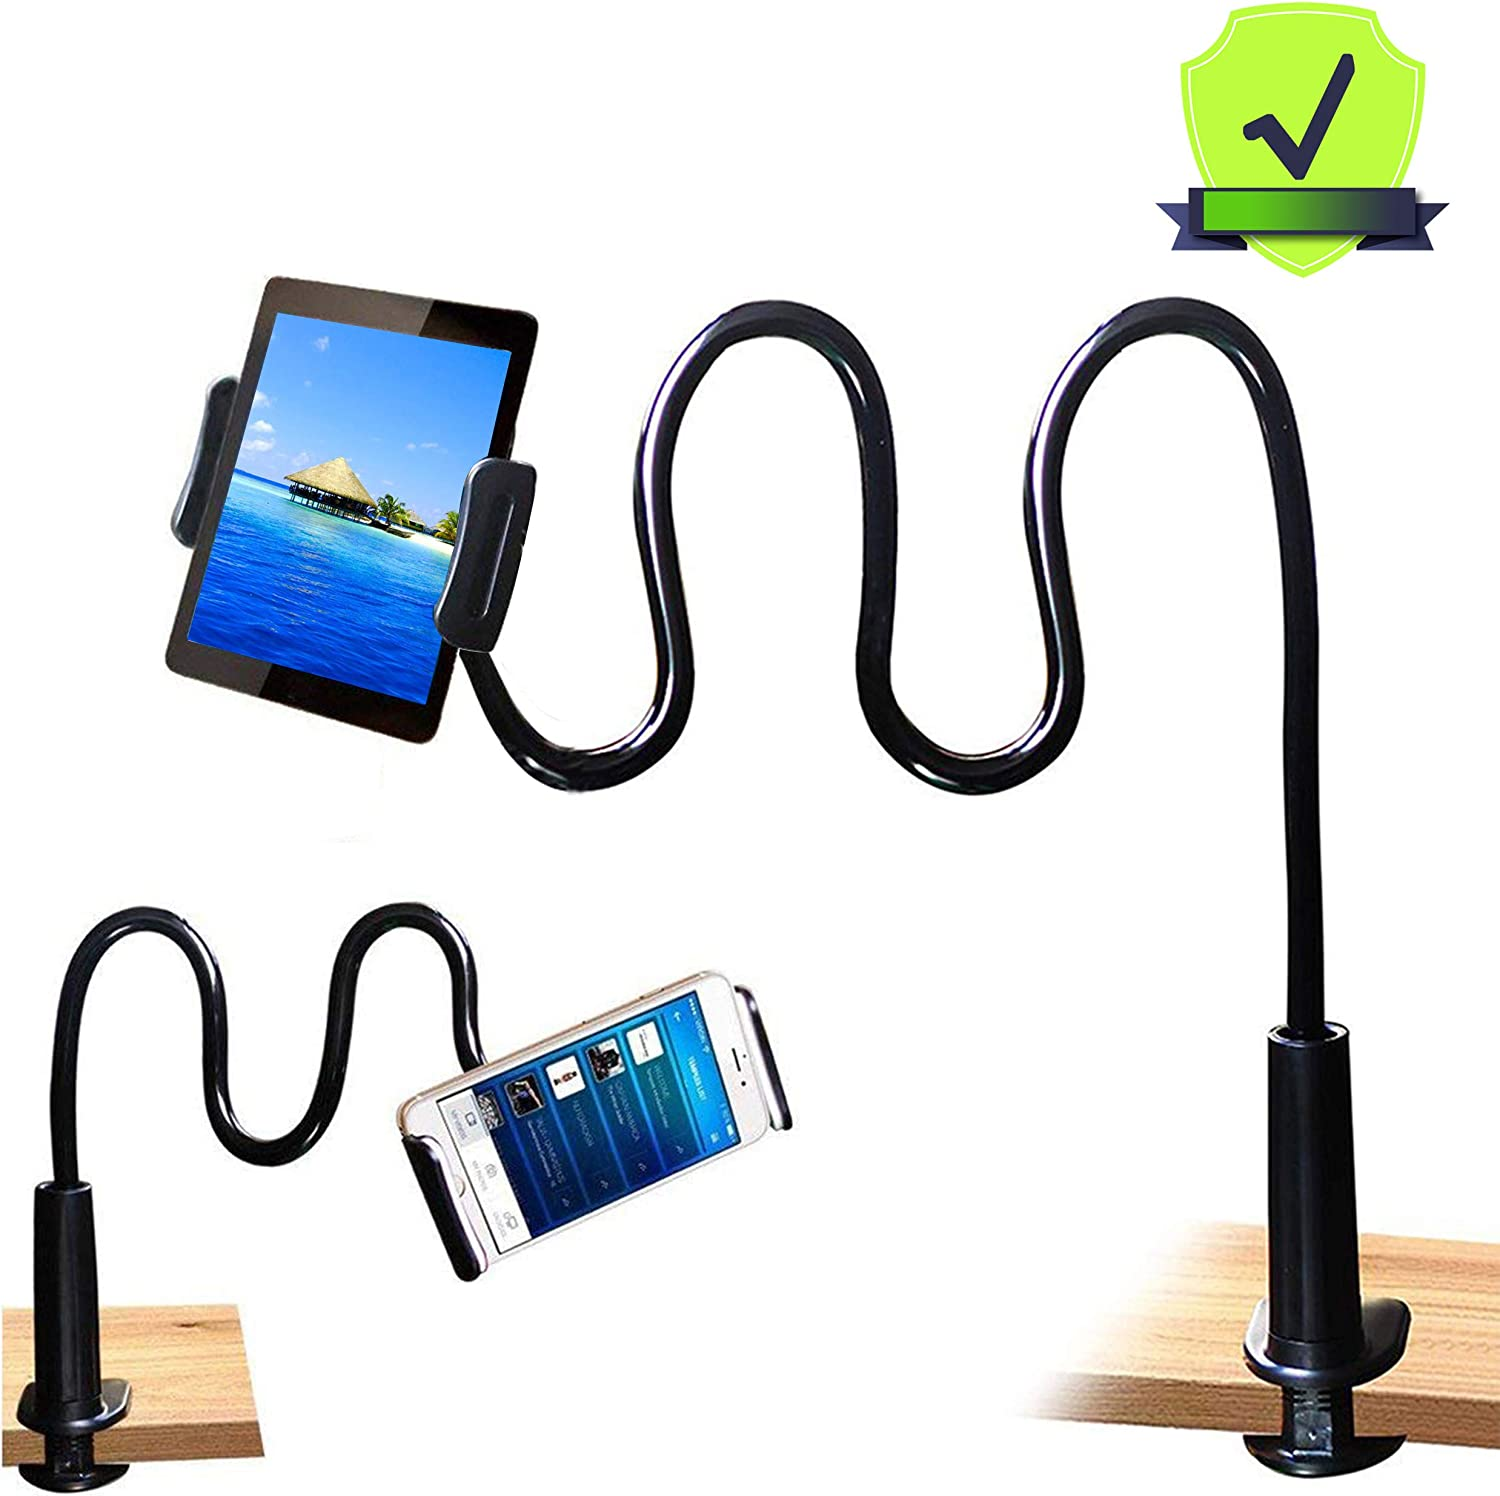 Amazon.com: MAGIPEA Tablet Stand Holder, Mount Holder Clip with Grip  Flexible Long Arm Gooseneck Compatible with ipad iPhone/Nintendo  Switch/Samsung Galaxy Tabs/Amazon Kindle Fire HD - Black : Electronics